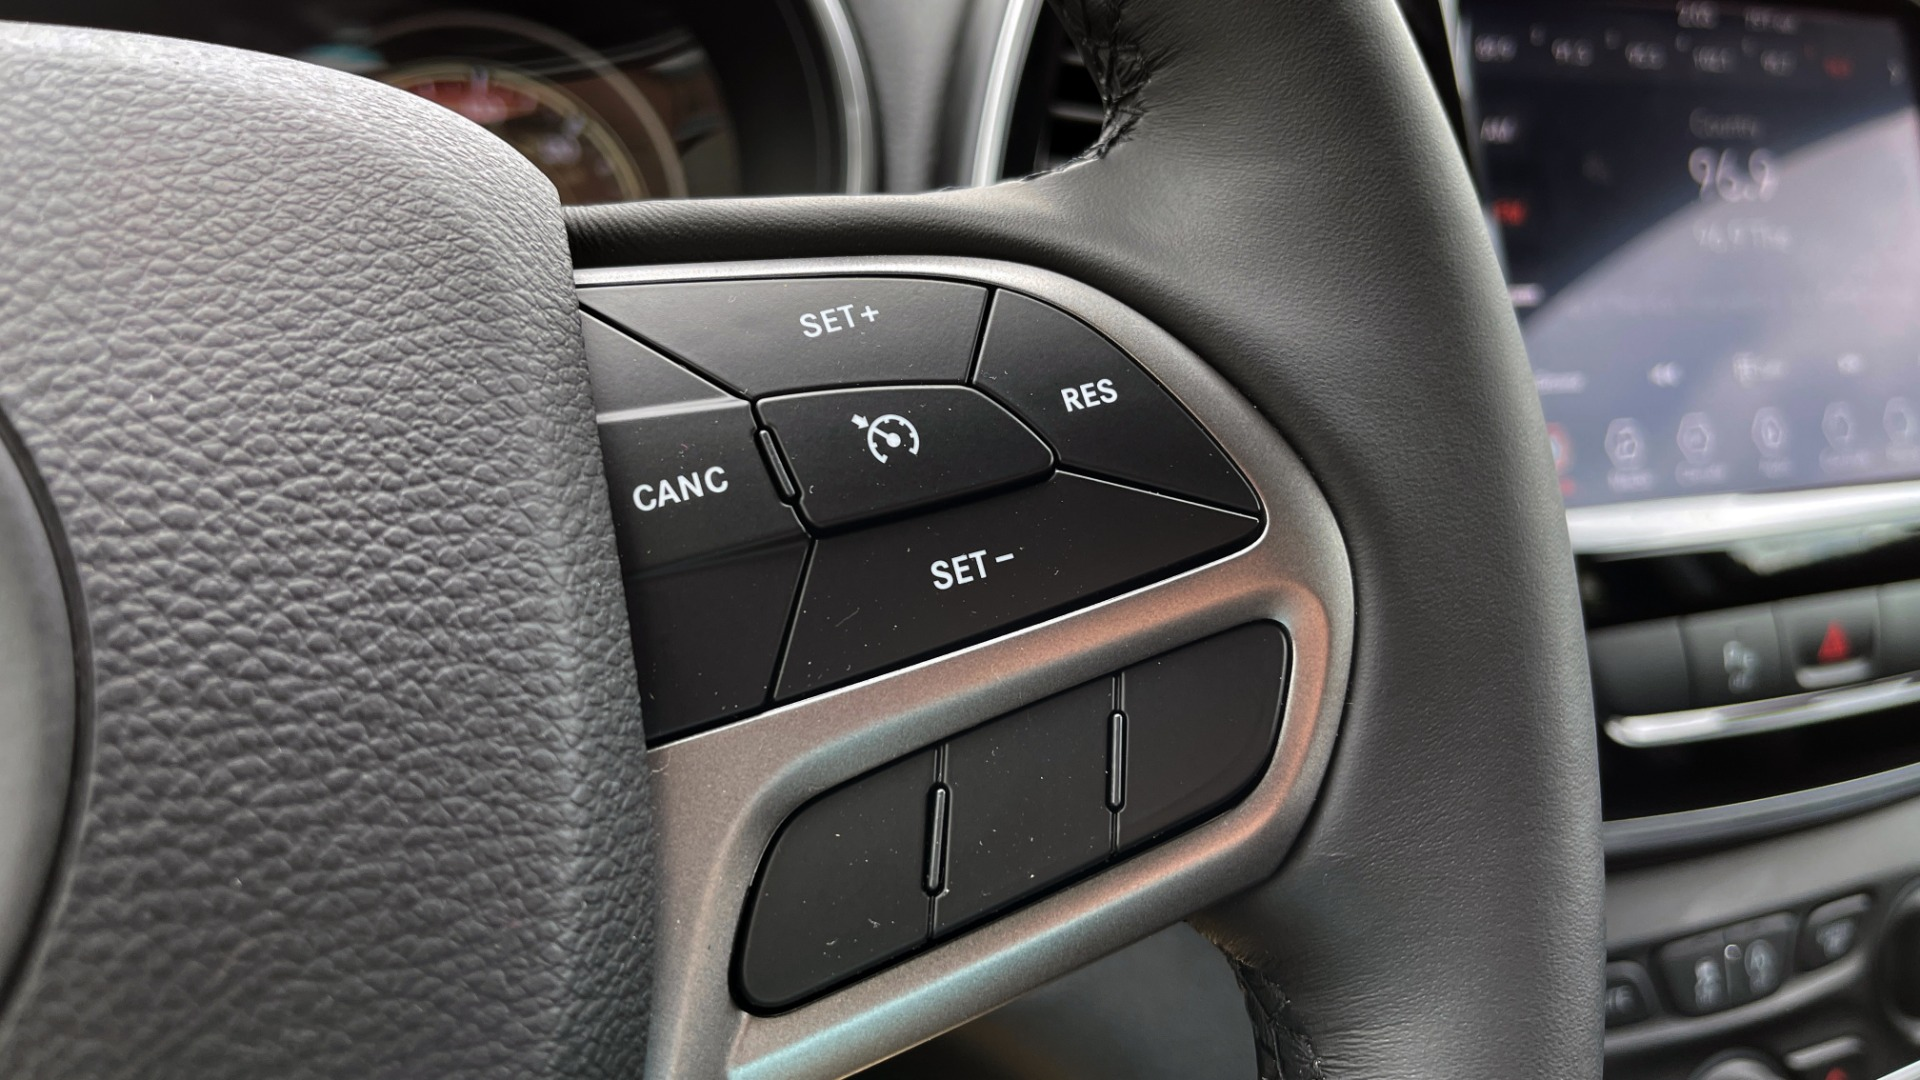 Used 2019 Jeep CHEROKEE LIMITED 4X4 / KEYLESS-GO / BLIND SPOT AND CROSS PATH / REMOTE START / REARV for sale $26,995 at Formula Imports in Charlotte NC 28227 40